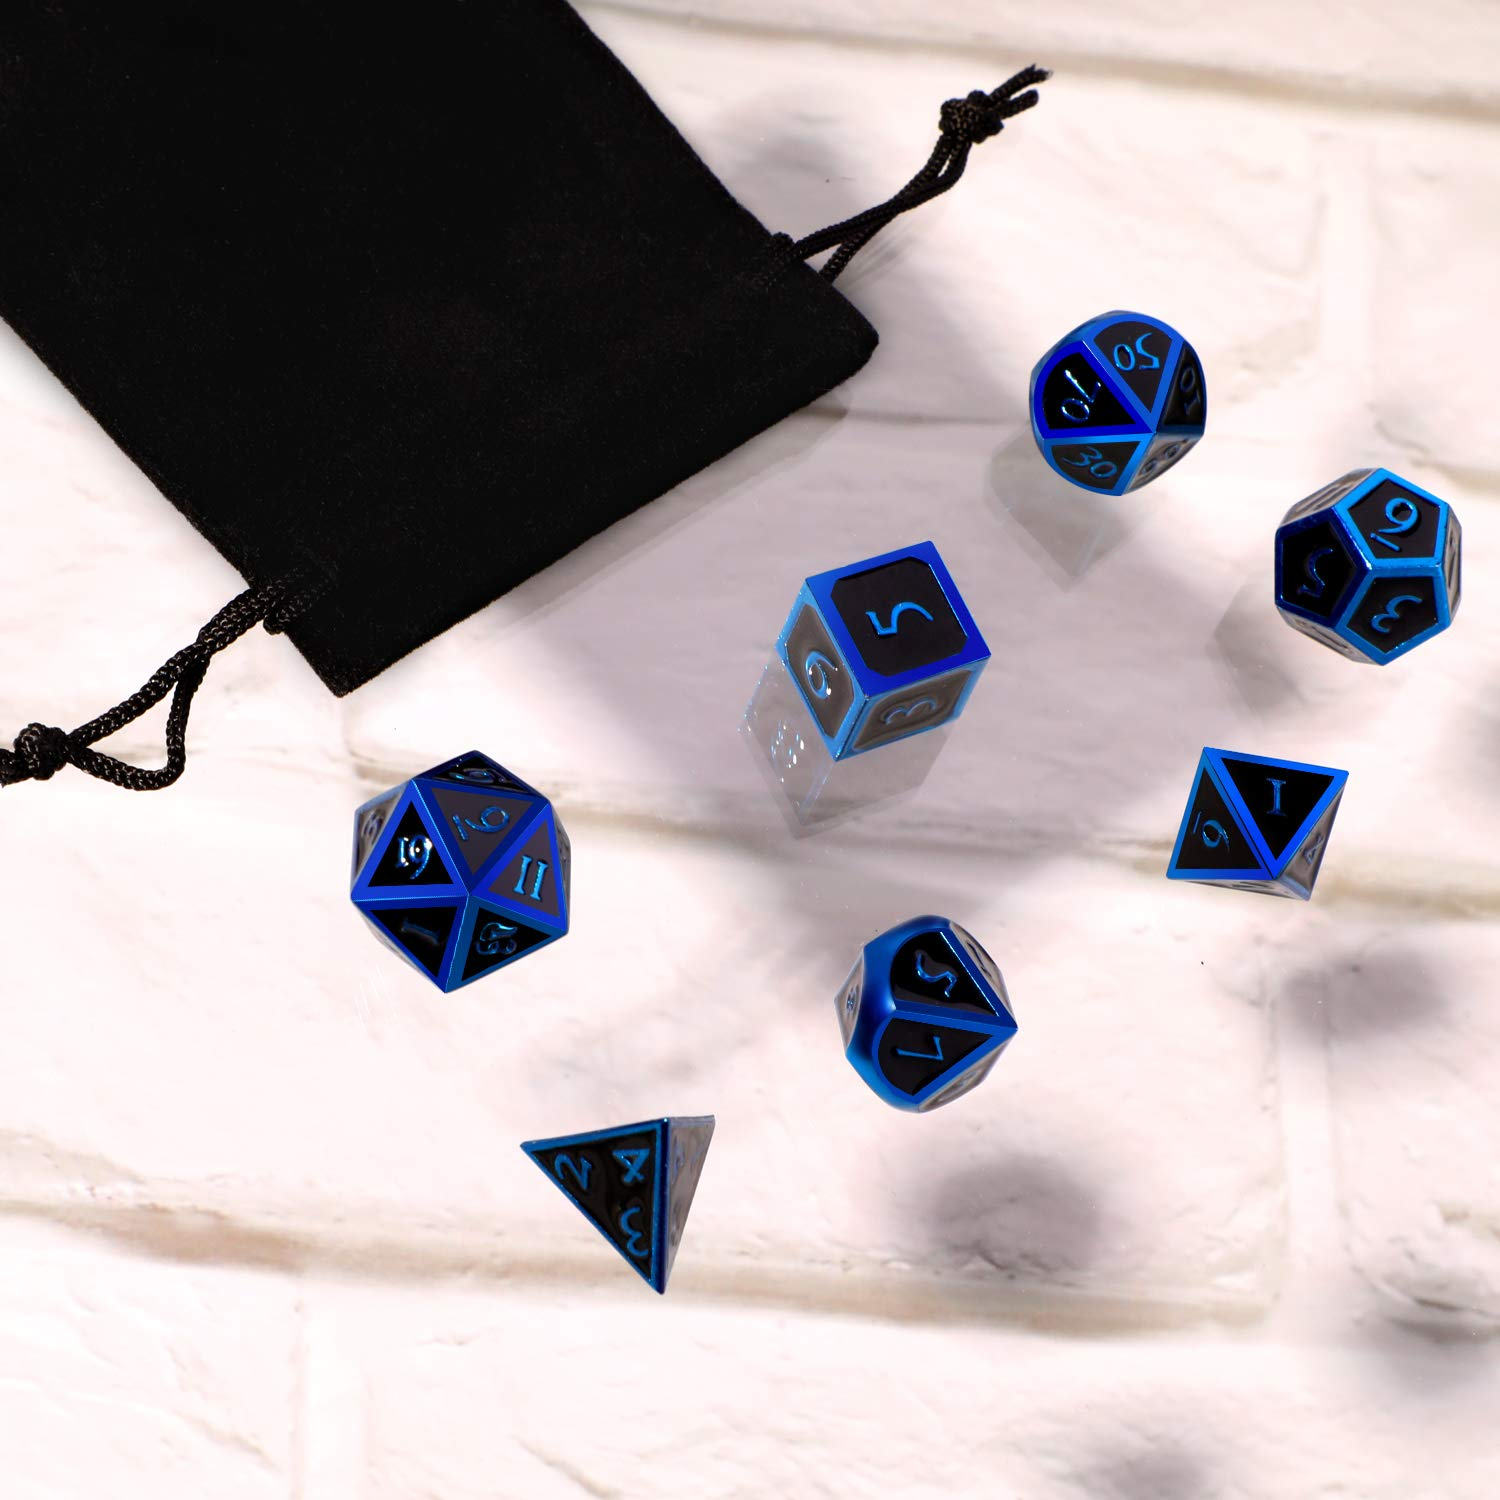 Hestya 7 Pieces Metal Dices Set DND Game Polyhedral Solid Metal D&D Dice Set with Storage Bag and Zinc Alloy with Enamel for Role Playing Game Dungeons and Dragons (Blue Edge Black) by Hestya (Image #7)